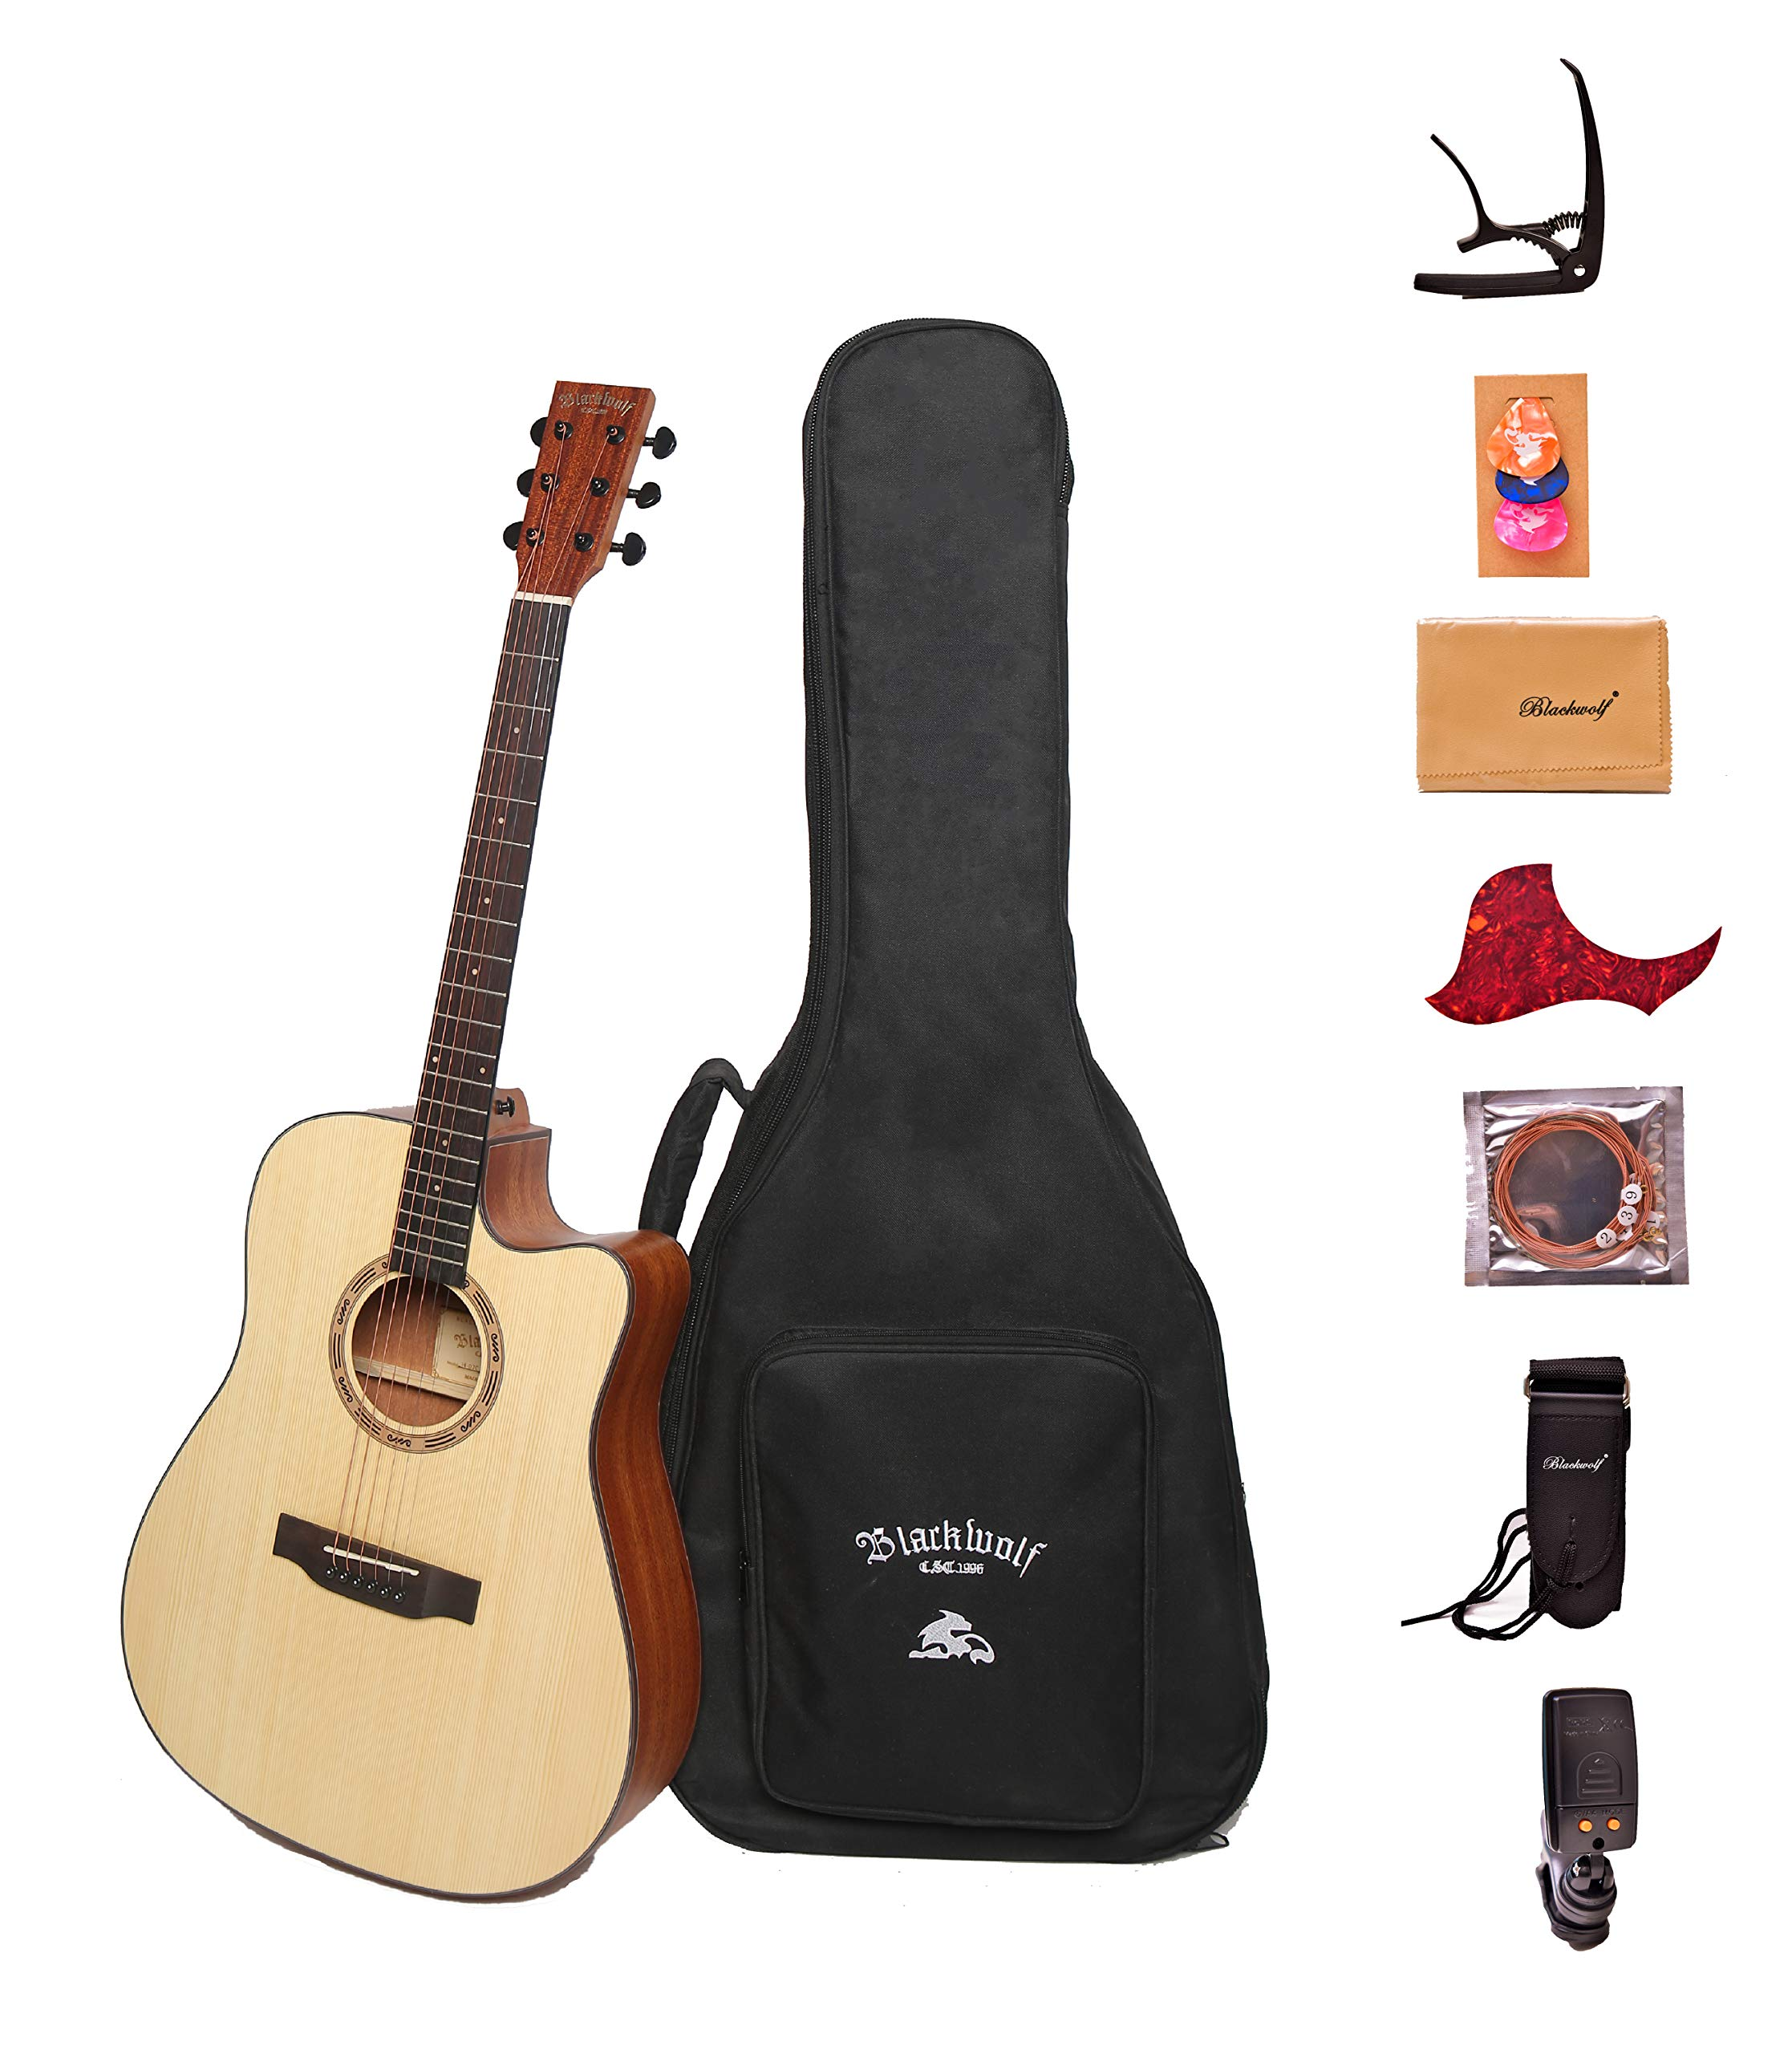 Black Wolf Beginners Acoustic Guitar 41'' Natural Color Cutaway Bundle with Gig Bag, Tuner, Capo,Strings, Strap, Picks and Polishing Cloth S1 by blackwolf (Image #1)